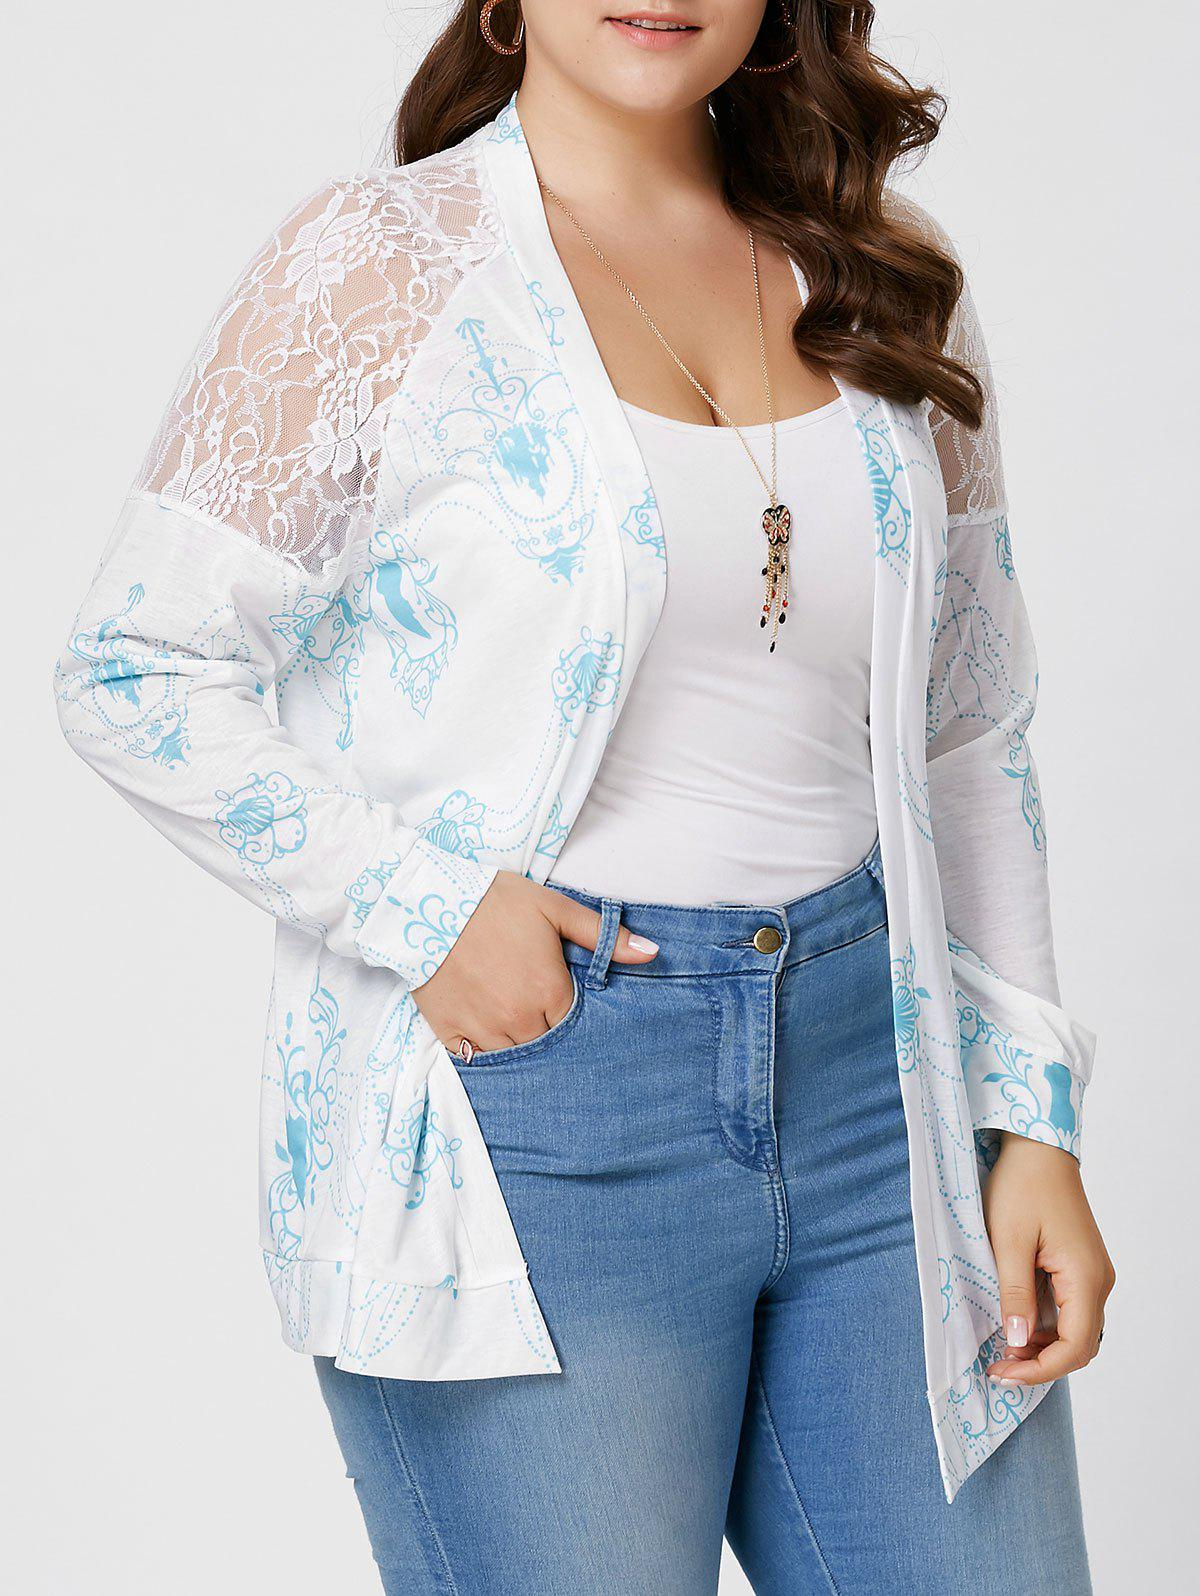 Sheer Back Lace Crochet Long Sleeve Plus Size CardiganWOMEN<br><br>Size: 5XL; Color: WHITE; Clothes Type: Others; Material: Cotton Blends,Polyester; Type: Slim; Shirt Length: Regular; Sleeve Length: Full; Collar: Collarless; Pattern Type: Print; Style: Fashion; Season: Fall,Spring; Weight: 0.2400kg; Package Contents: 1 x Cardigan;